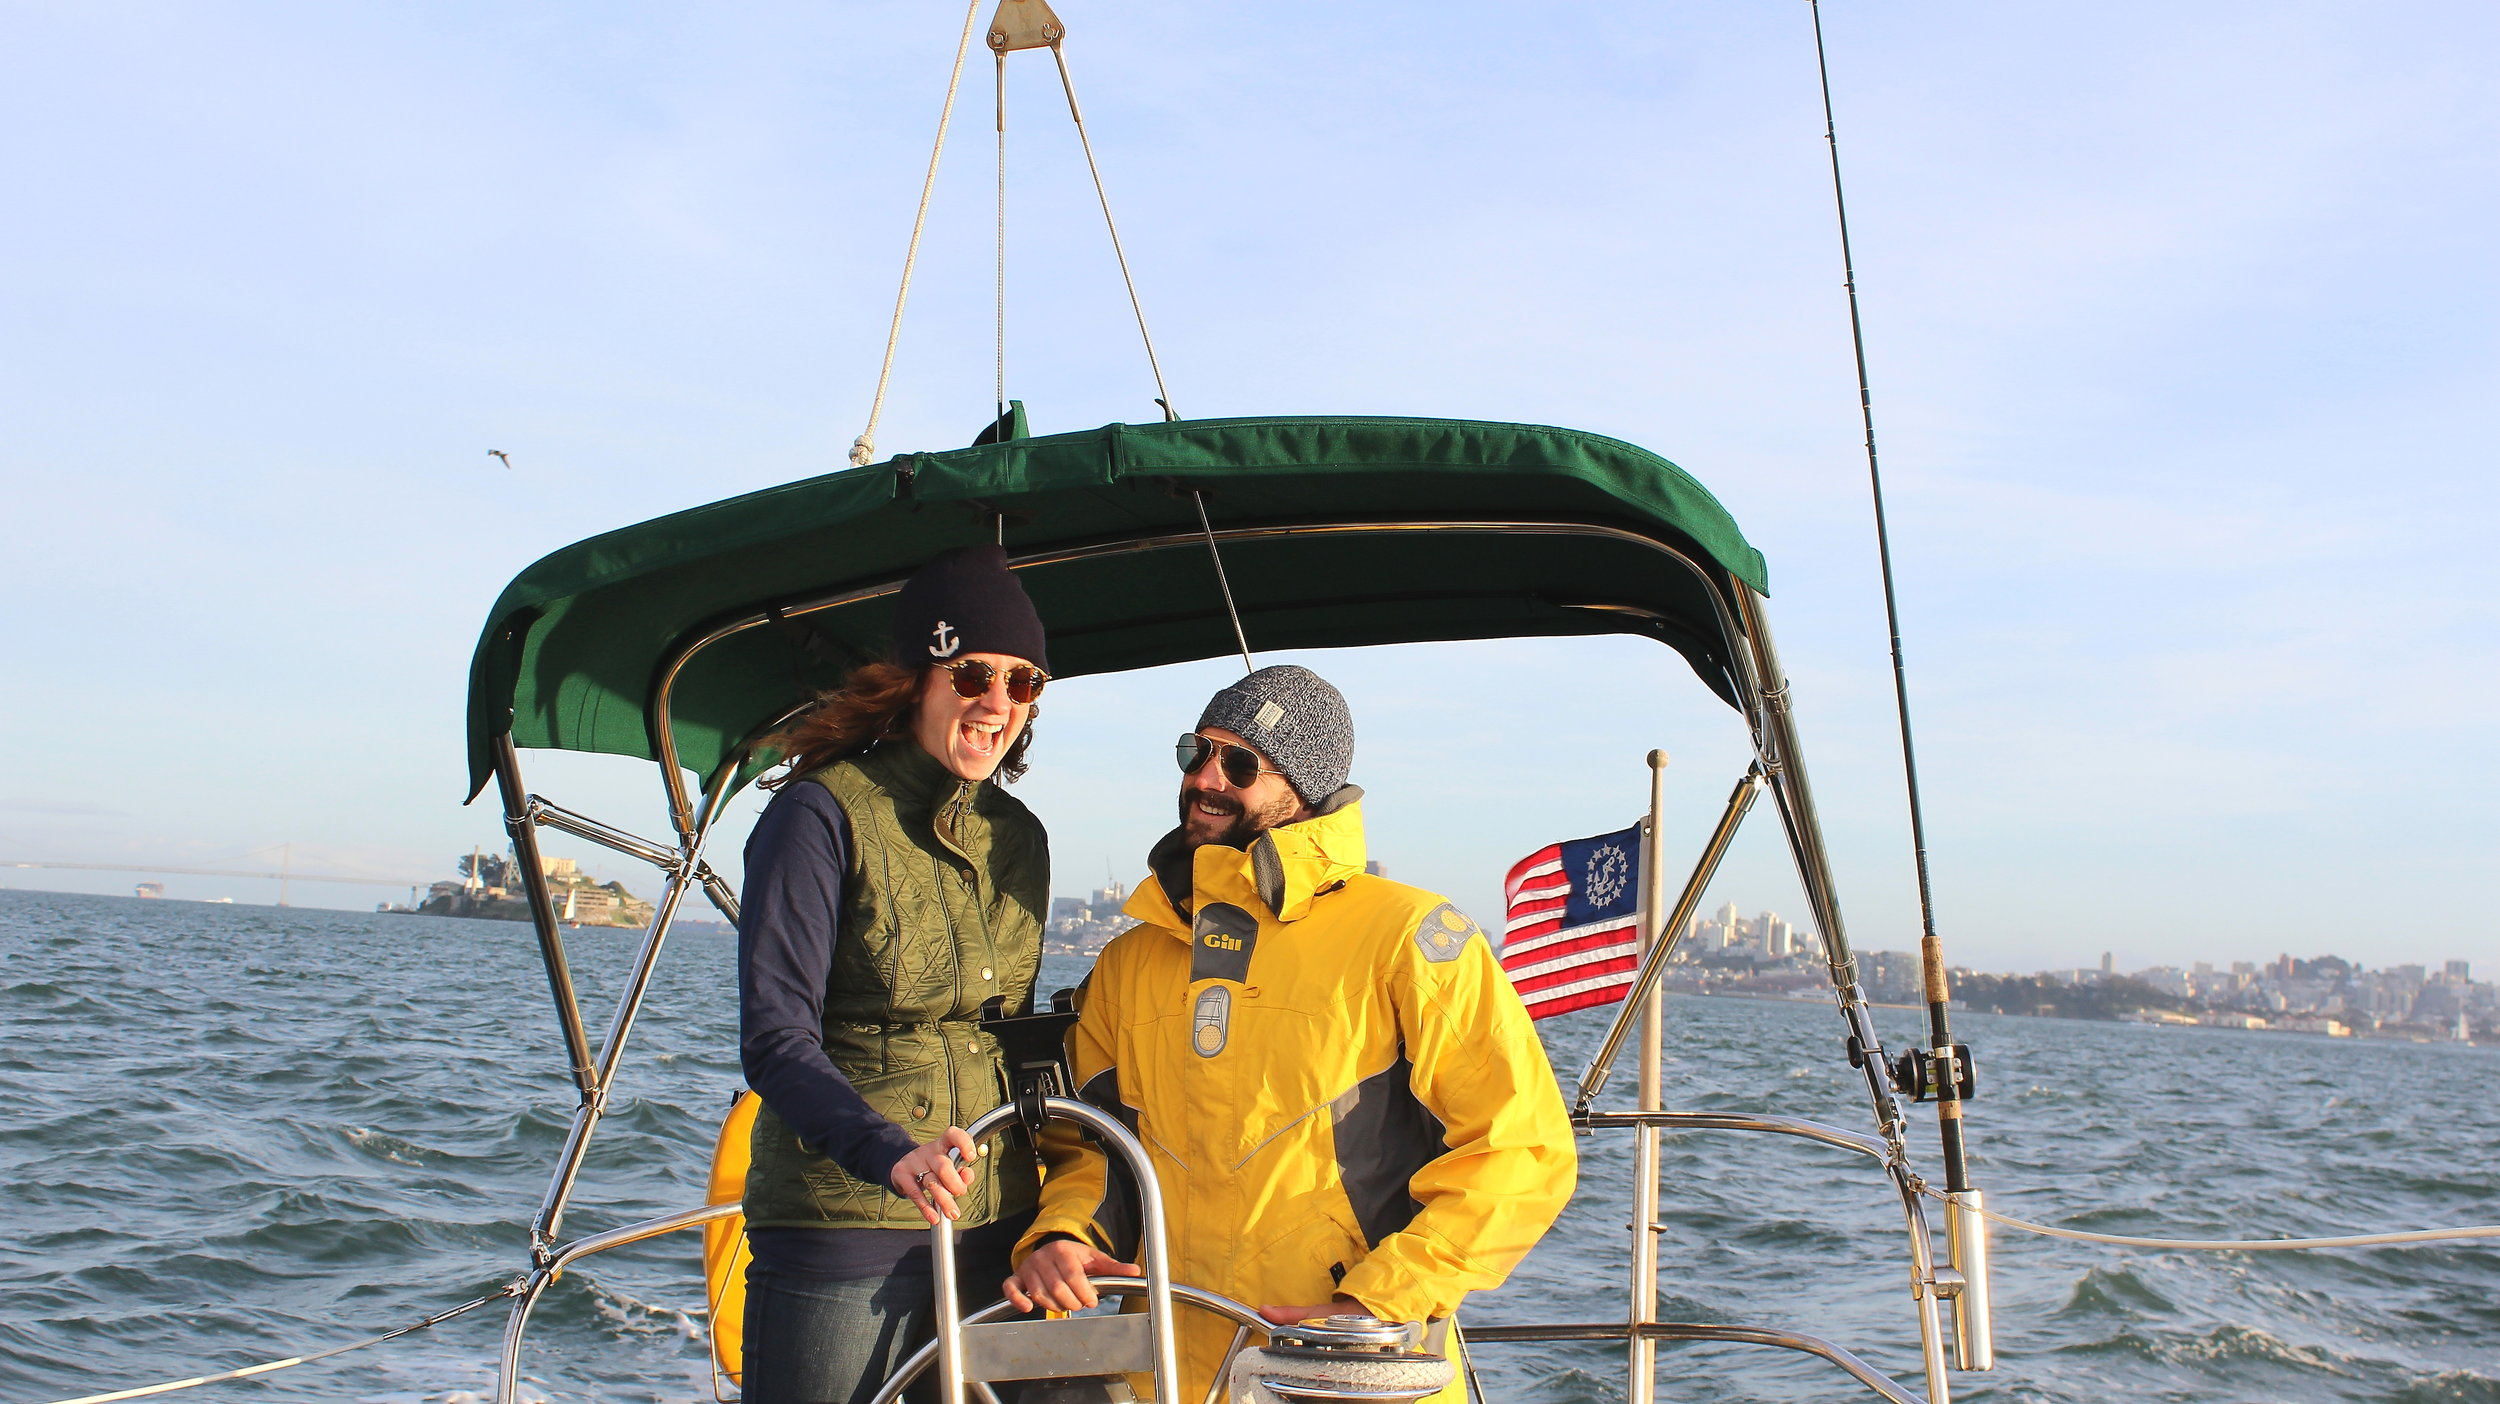 Thisldu sailing and travel blog - what it's like to live on a sailboat